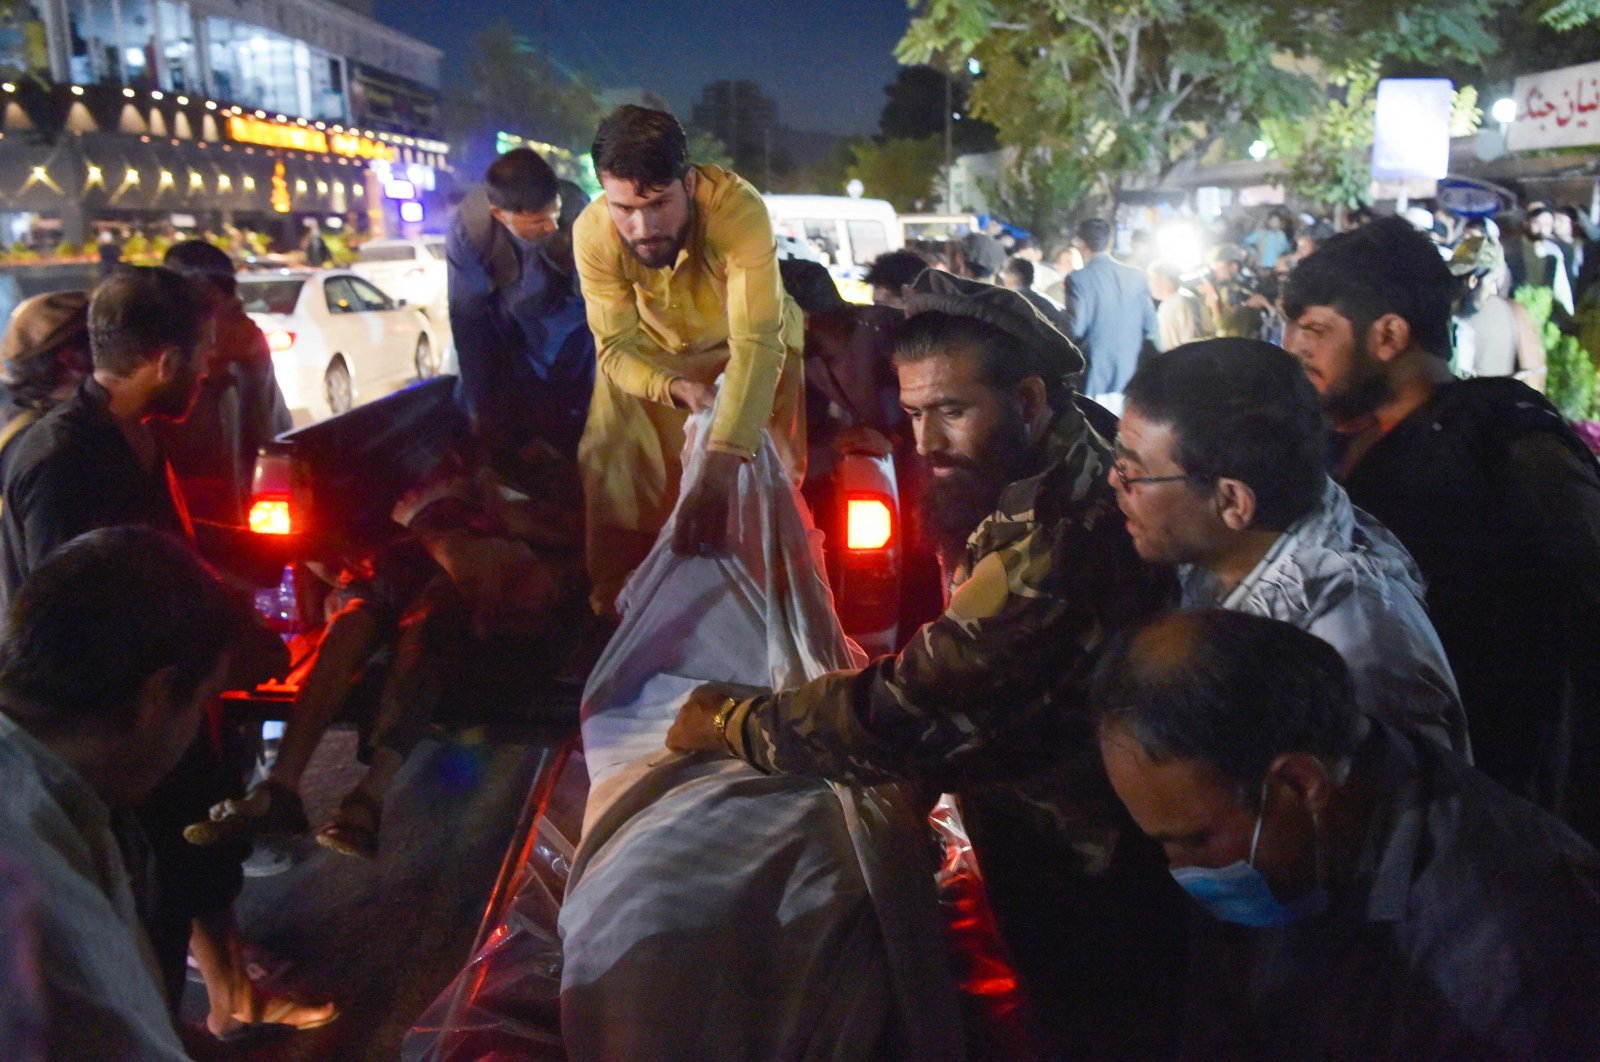 Volunteers and medical staff unload bodies from a pickup truck outside a hospital after two powerful explosions, which killed at least six people, outside the airport in Kabul, Afghanistan, Aug. 26, 2021. (Photo by Wakil KOHSAR via AFP)